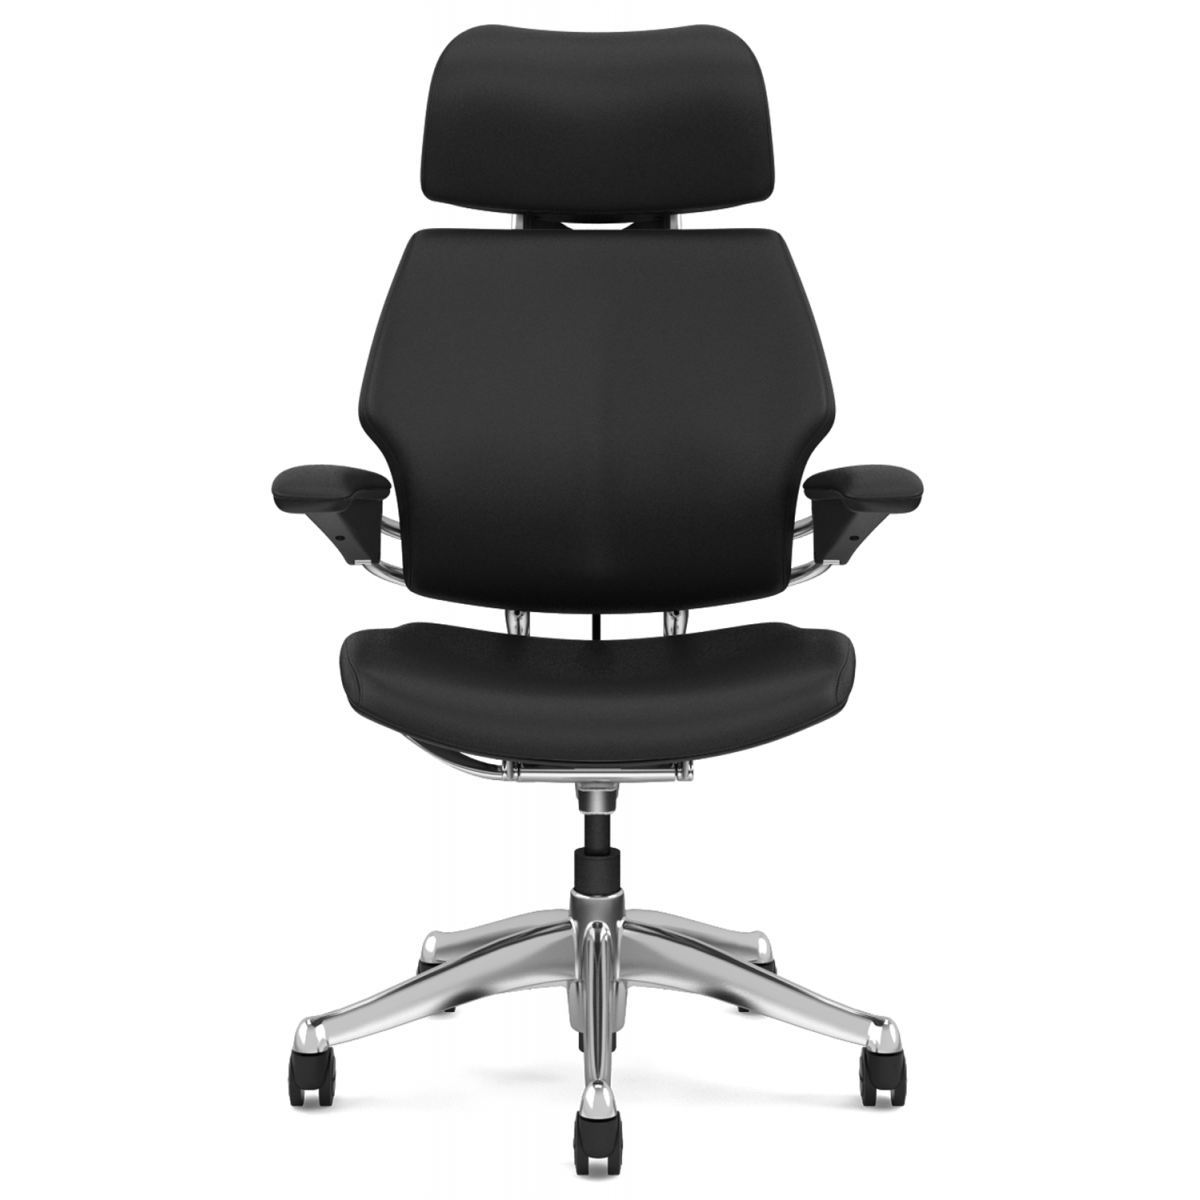 desk chair adjustable swivel base for recliner humanscale freedom executive with headrest